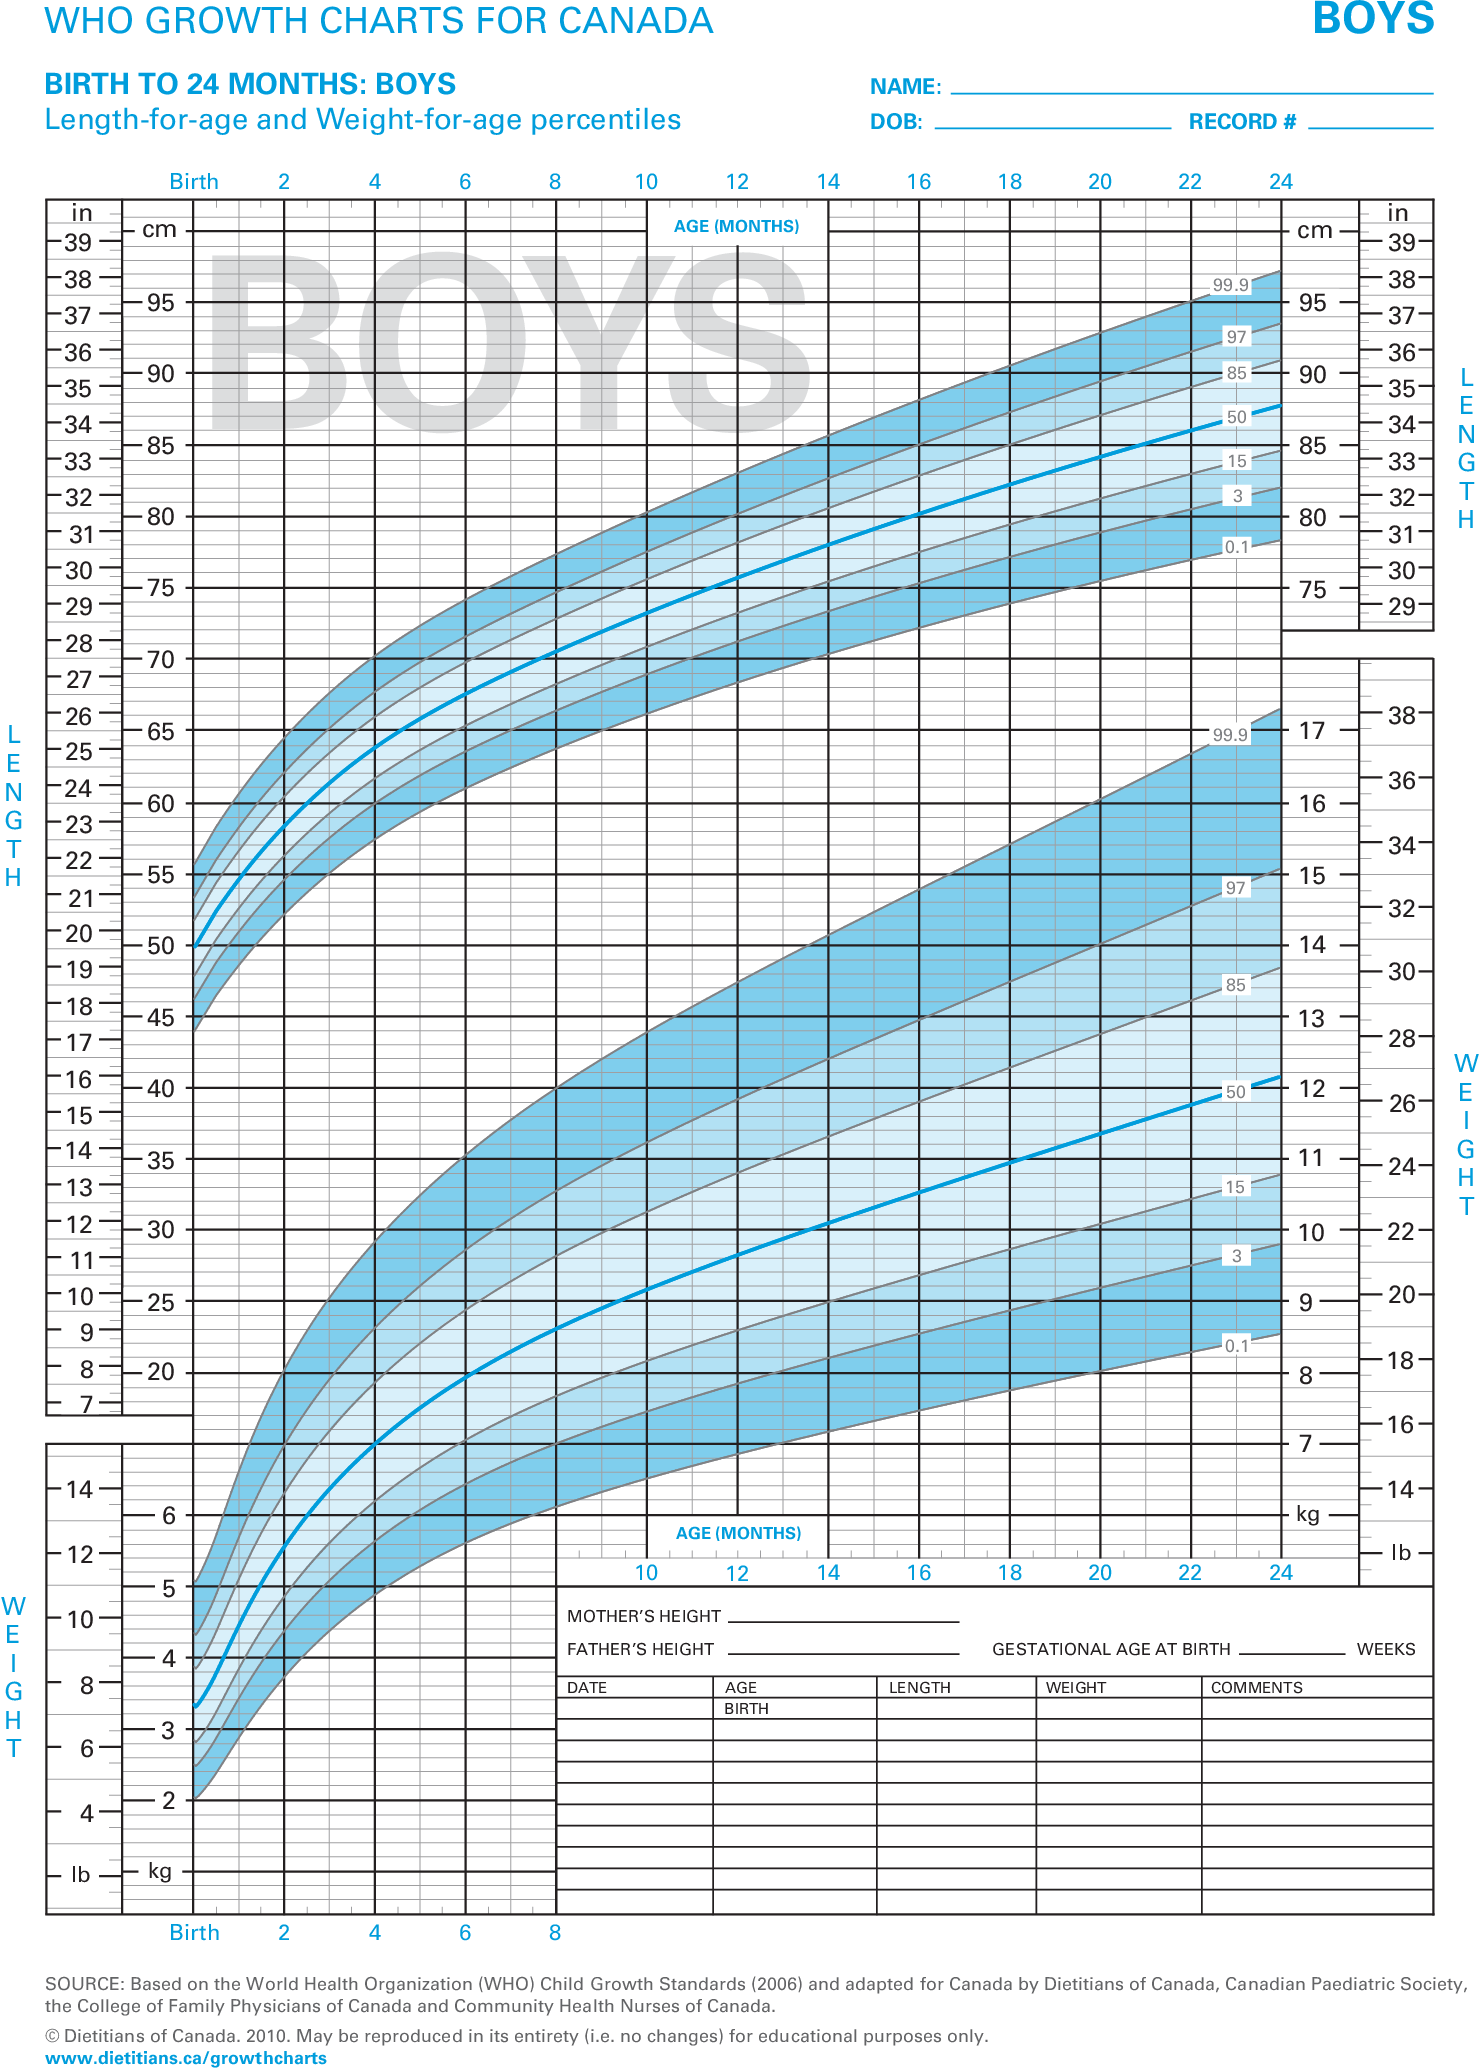 Who growth charts for canada birth to 24 months juno emr this eform includes the who growth chart for canada for both boys and girls from birth to 24 months old nvjuhfo Image collections